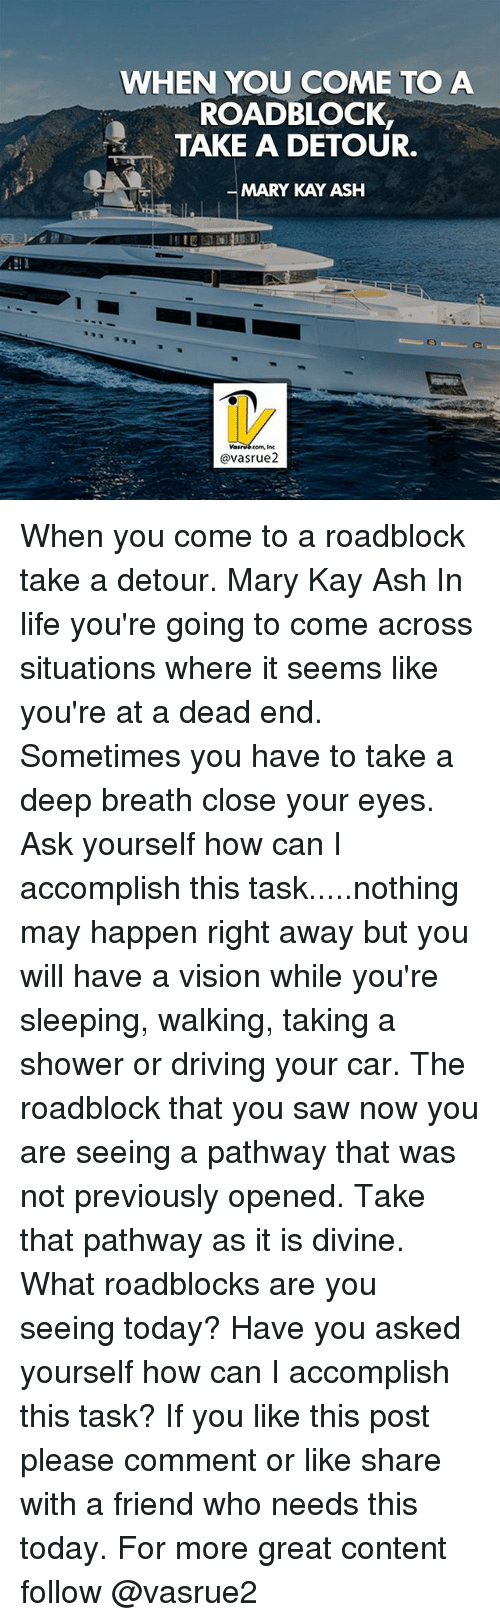 Ash, Driving, and Life: WHEN YOU COME TO A  ROADBLOCK,  TAKE A DETOUR.  MARY KAY ASH  avasrue2 When you come to a roadblock take a detour. Mary Kay Ash In life you're going to come across situations where it seems like you're at a dead end. Sometimes you have to take a deep breath close your eyes. Ask yourself how can I accomplish this task.....nothing may happen right away but you will have a vision while you're sleeping, walking, taking a shower or driving your car. The roadblock that you saw now you are seeing a pathway that was not previously opened. Take that pathway as it is divine. What roadblocks are you seeing today? Have you asked yourself how can I accomplish this task? If you like this post please comment or like share with a friend who needs this today. For more great content follow @vasrue2